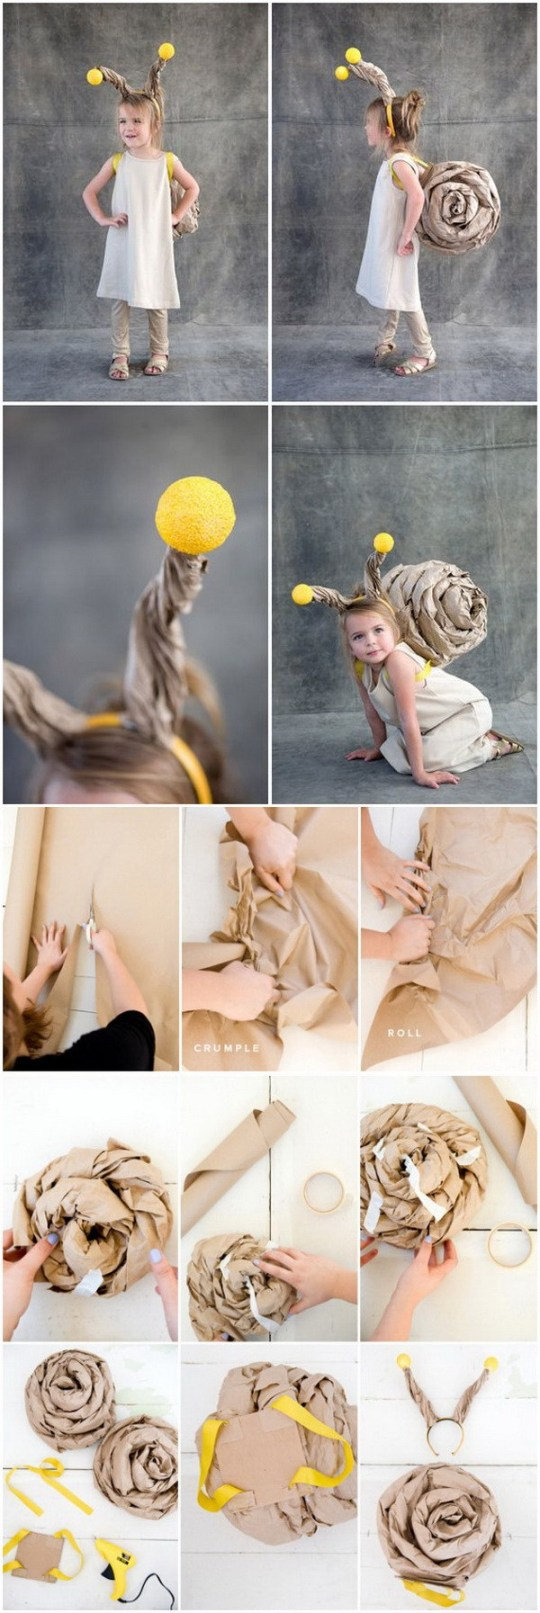 2-diy-halloween-costumes-for-kids.jpg